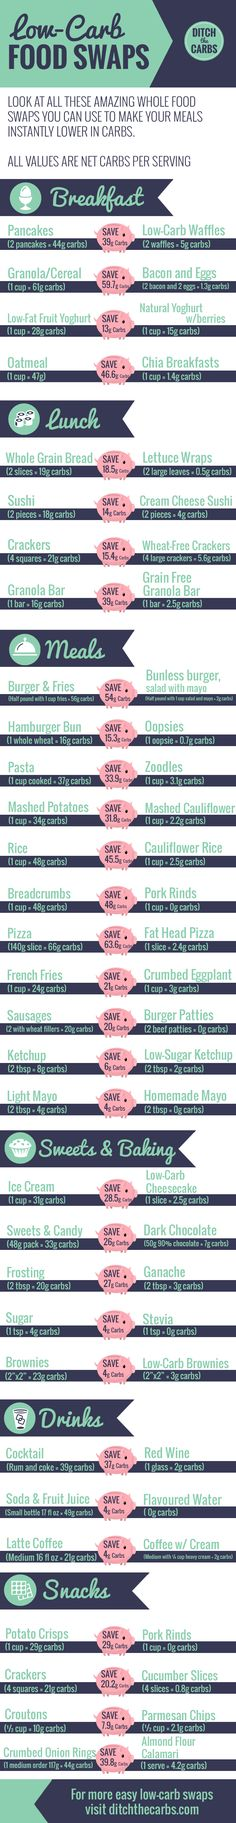 Check out these 31 easy low-carb swaps and see all the carb savings you can make. This is perfect for beginners who want easy low-carb swaps and low-carb keto recipes | ditchthecarbs,.com via @ditchthecarbs